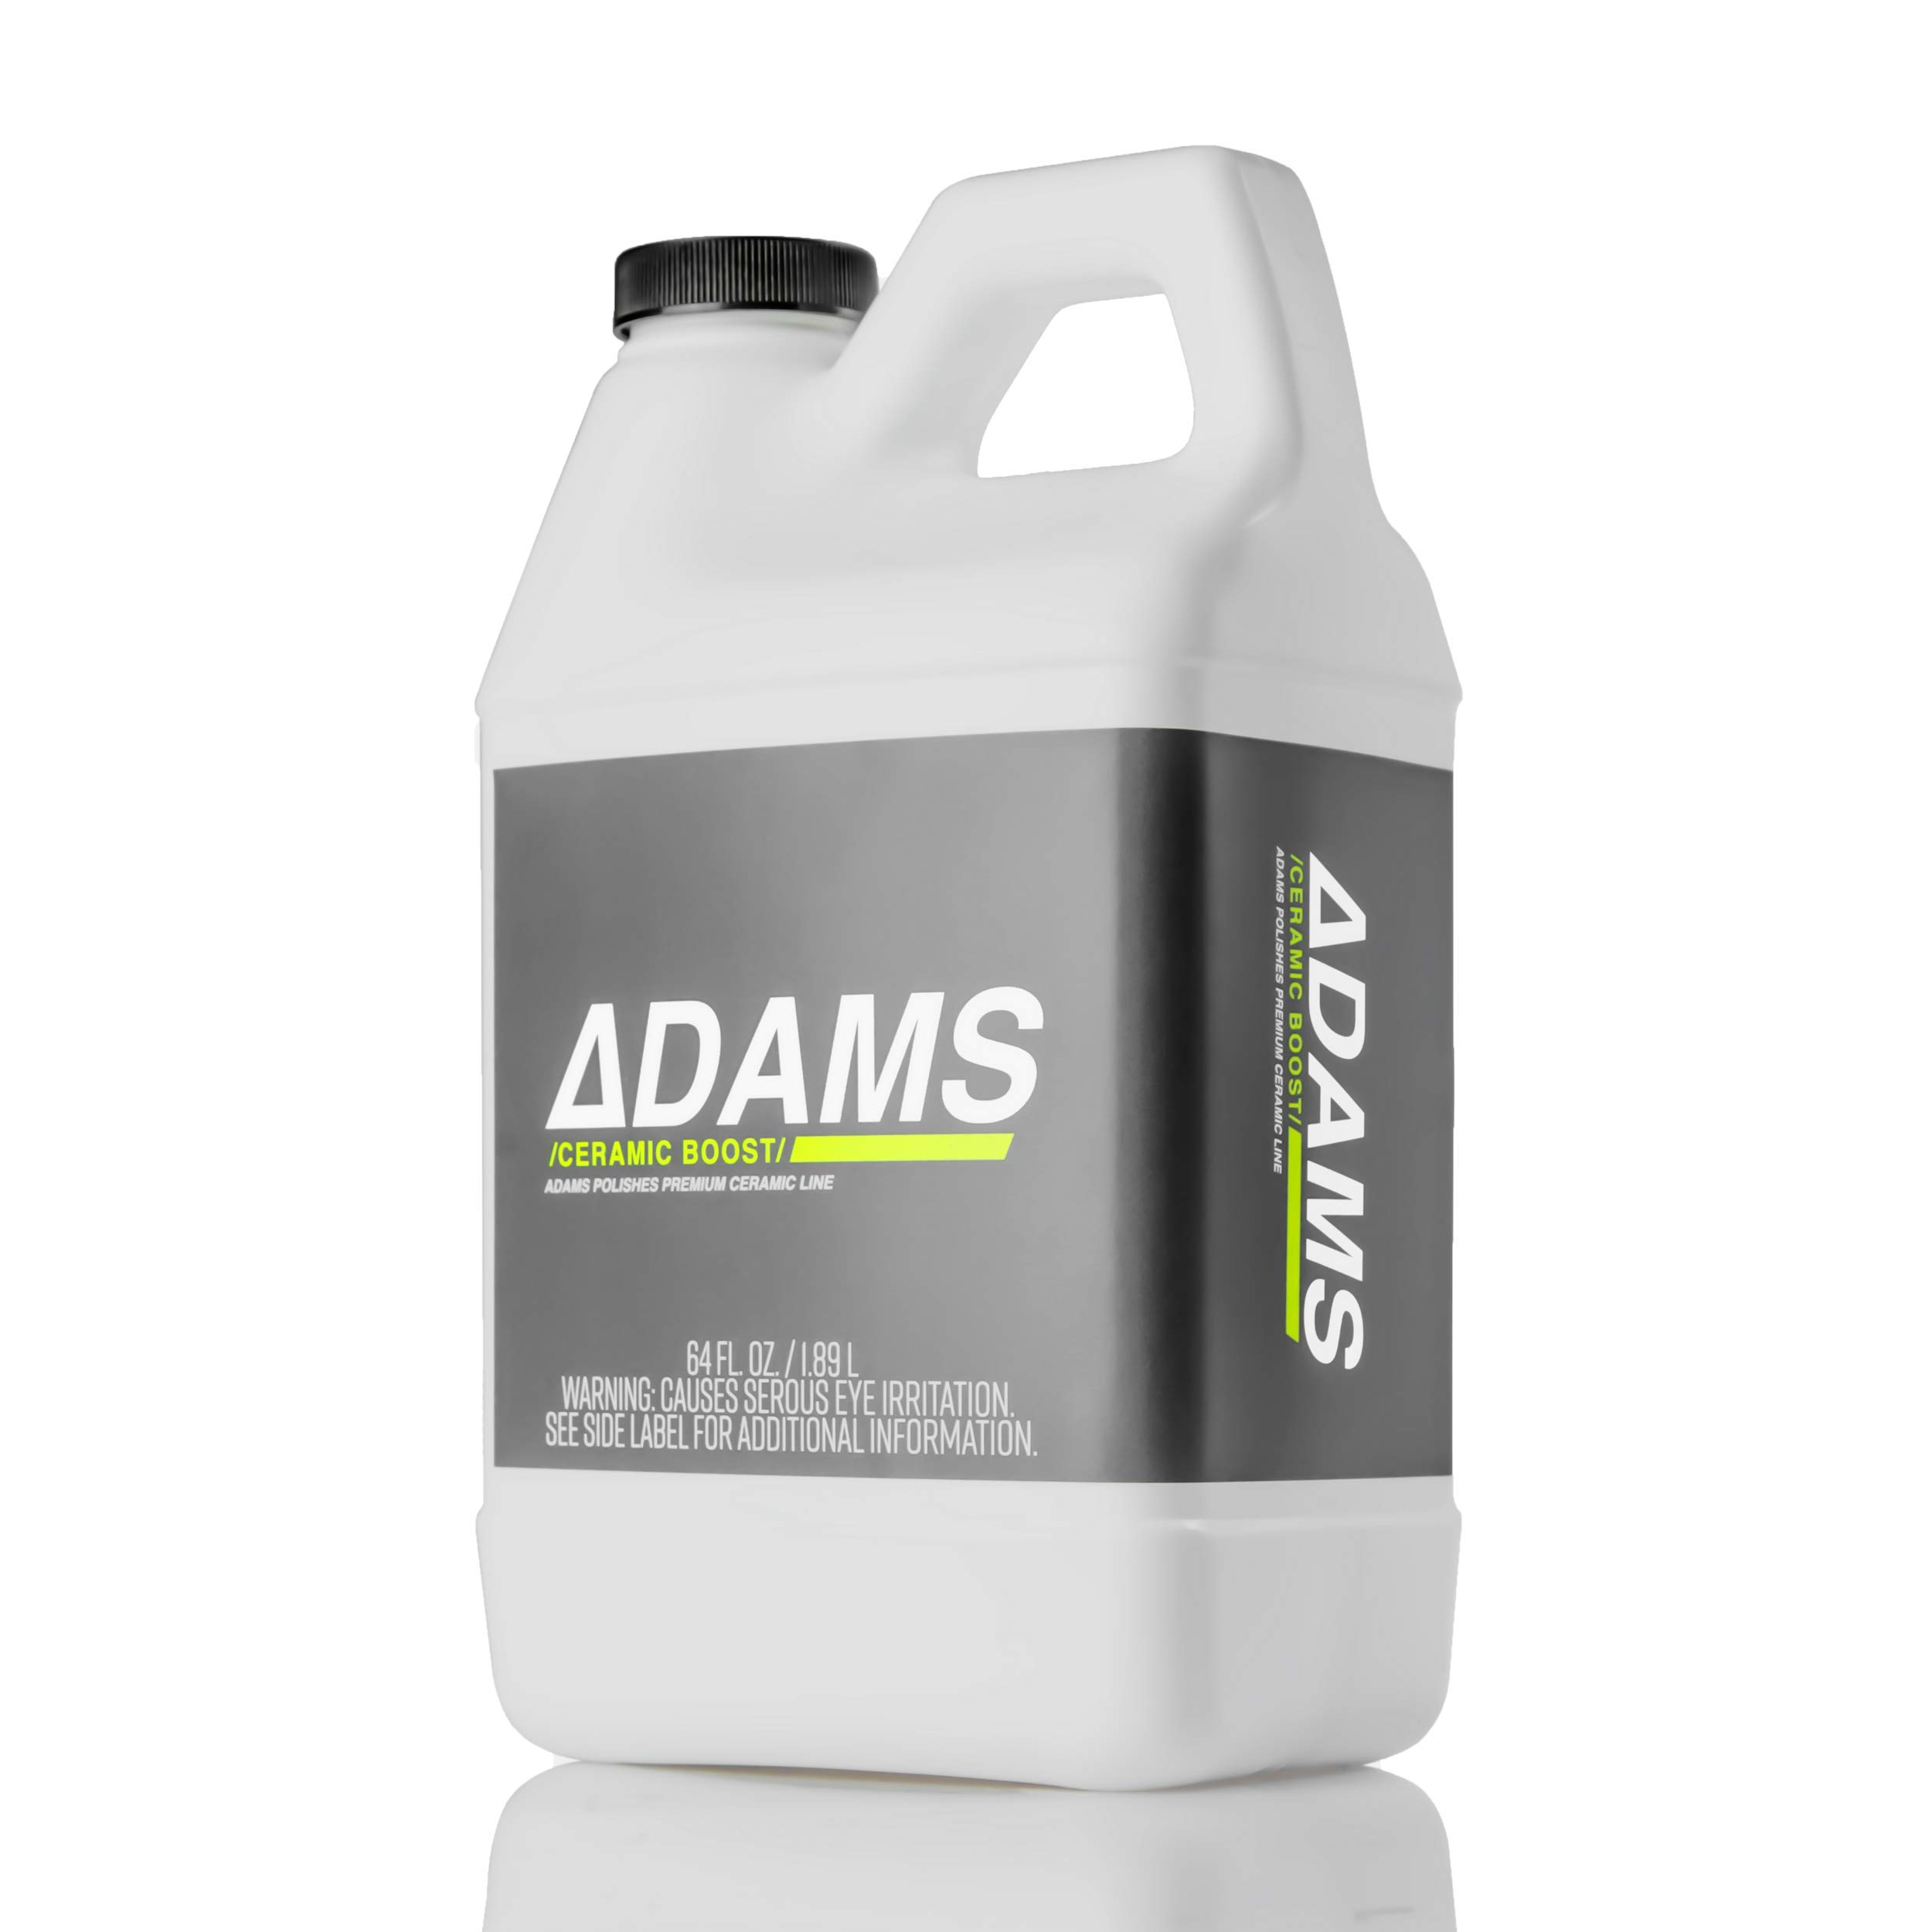 Adam's Ceramic Boost 2.0 - Ceramic Infused Quick Detailer Spray Sealant - Silica Protection Creates a Slick Surface to Bead and Repel Water - Use On Exterior Surfaces Paint, Wheels and Trim (64 oz)